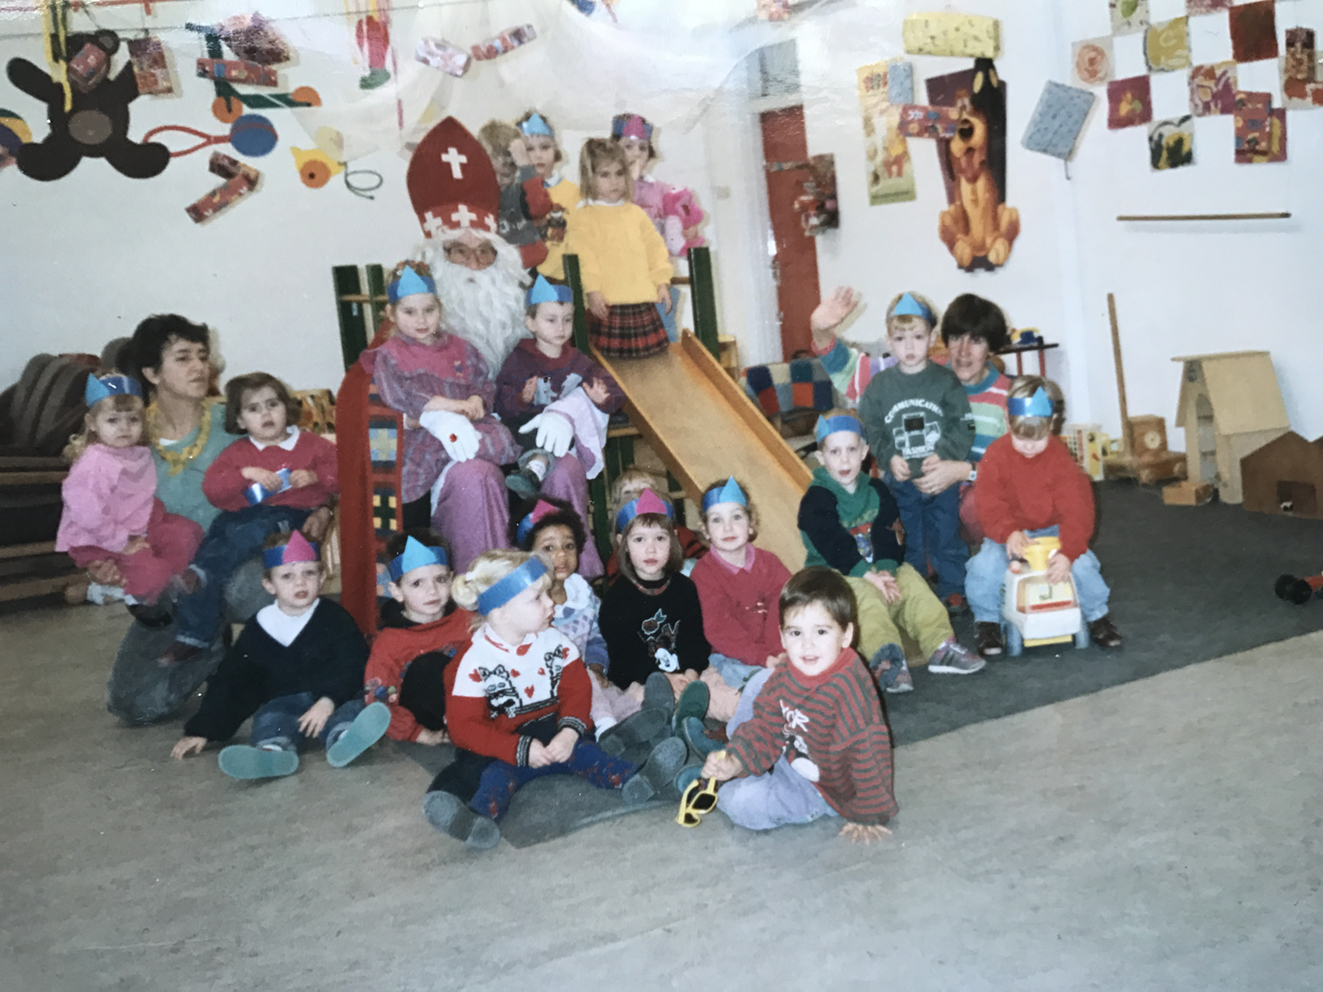 Celebrating Sinterklaas (I'm from the Netherlands) at preschool. The blonde girl sitting in the front row is me.